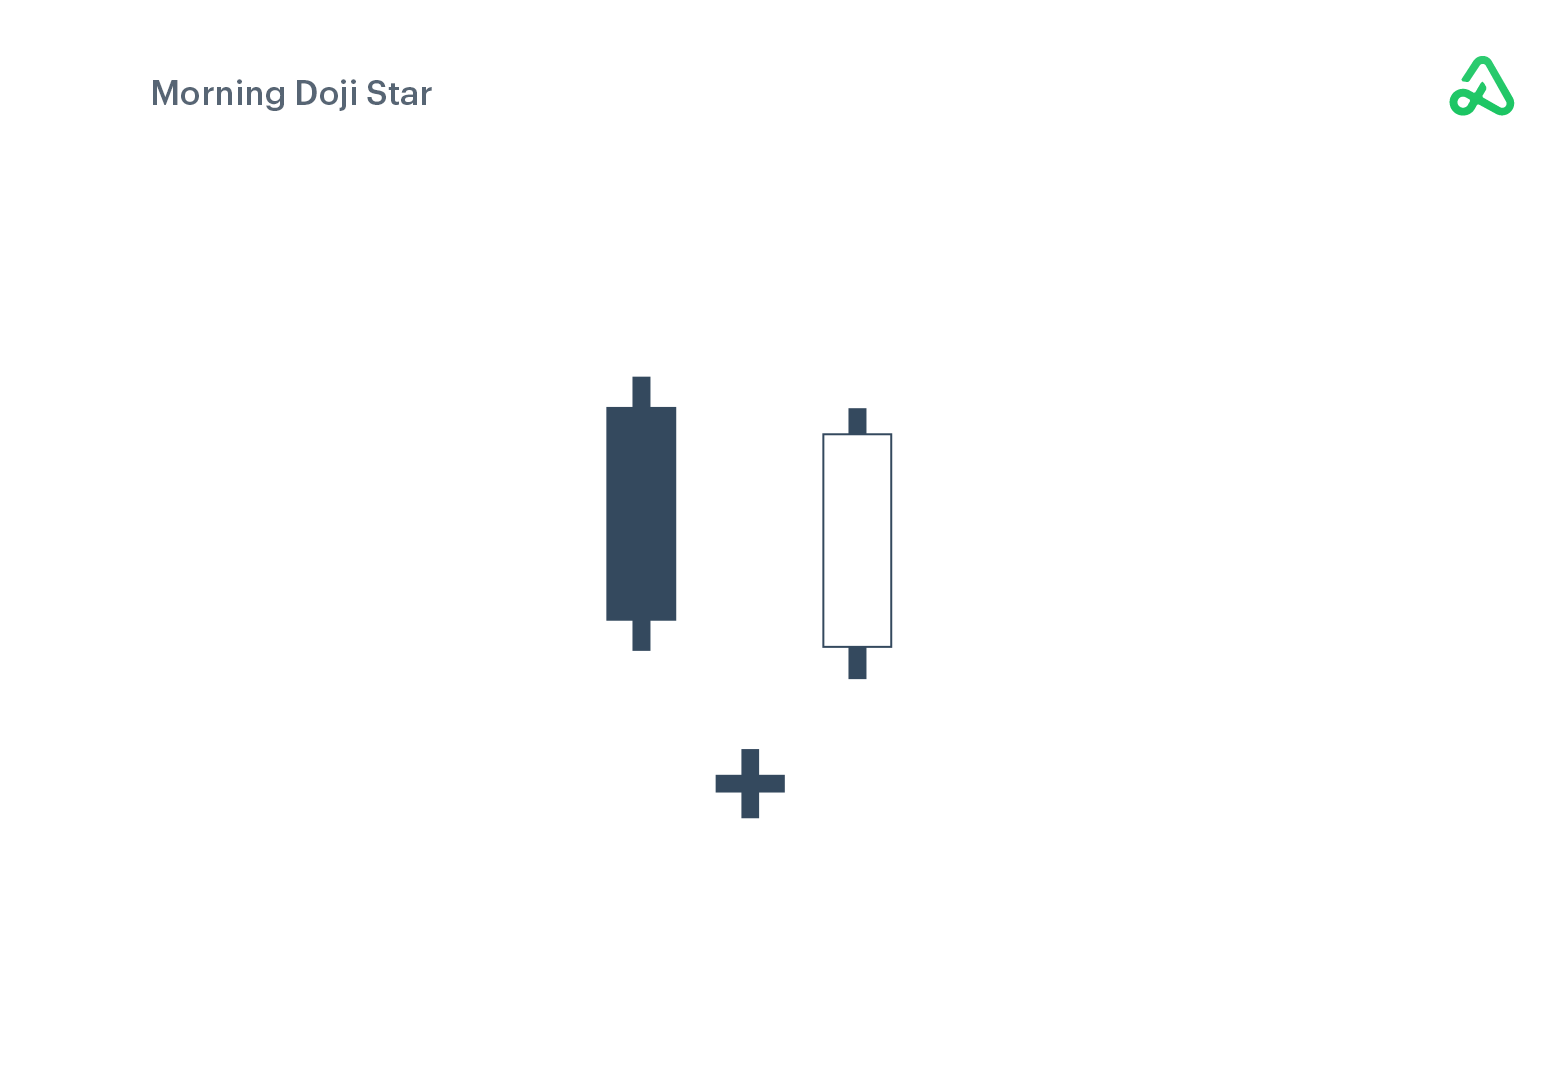 Morning Doji Star example image